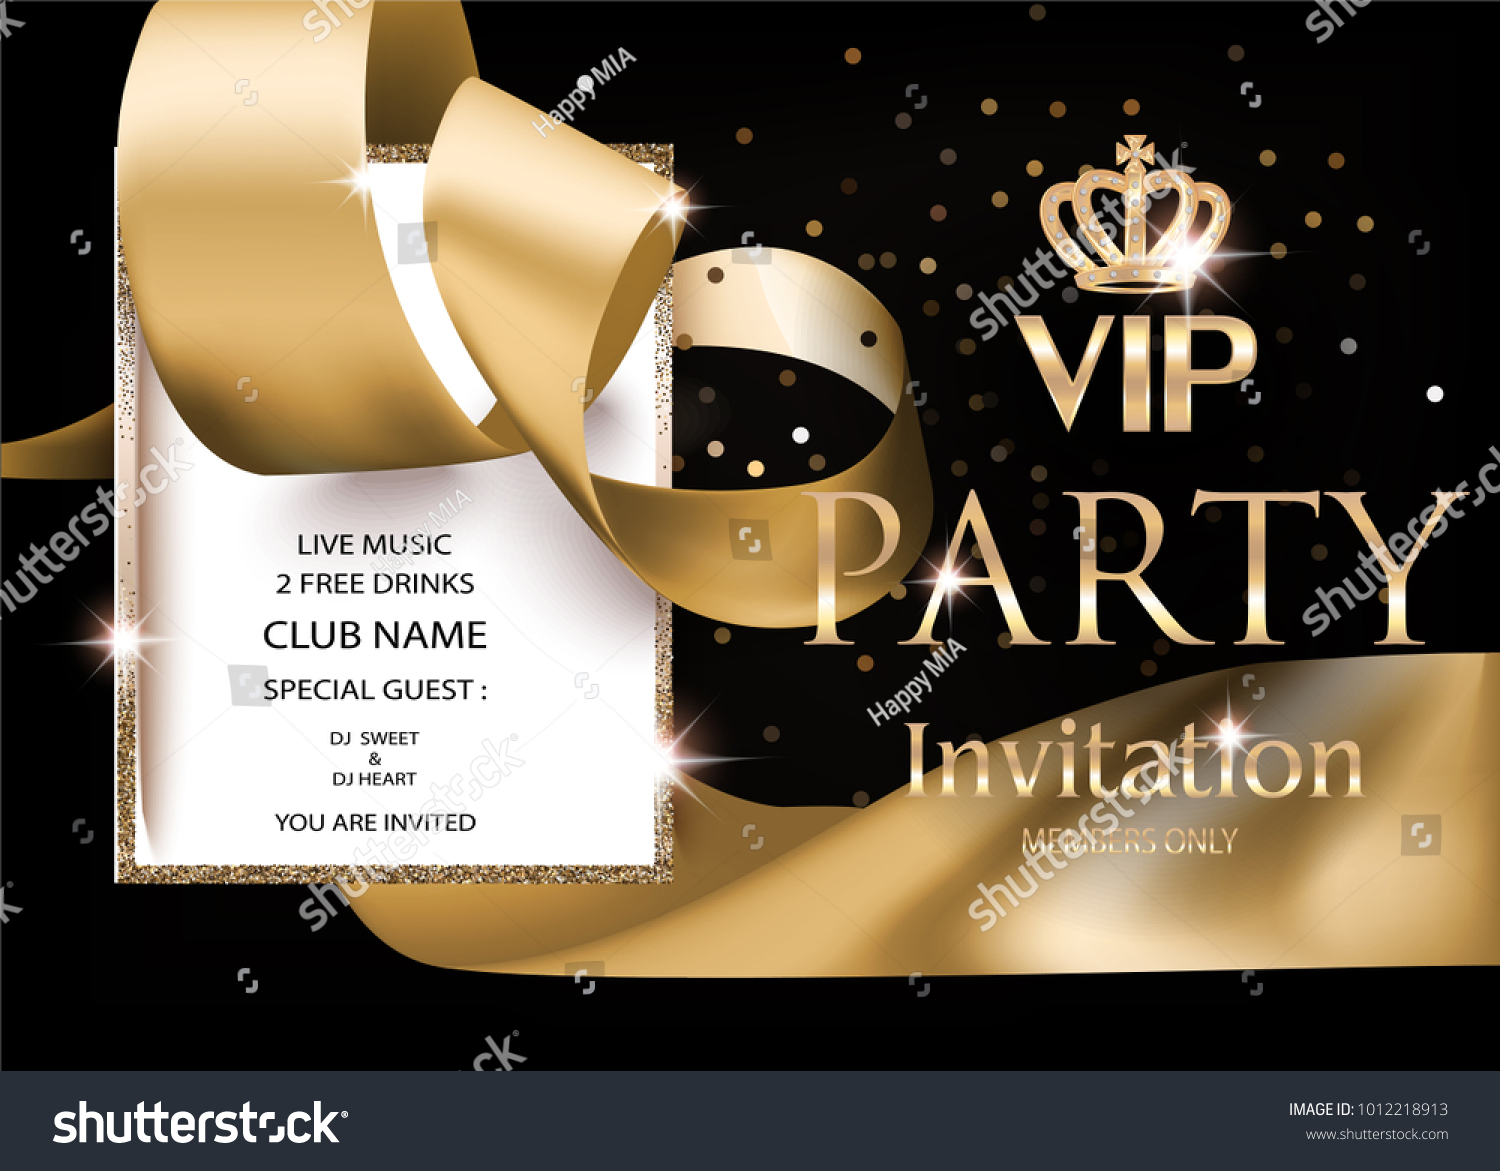 Vip Party Invitation Banner Golden Ribbon Stock Photo (Photo, Vector ...